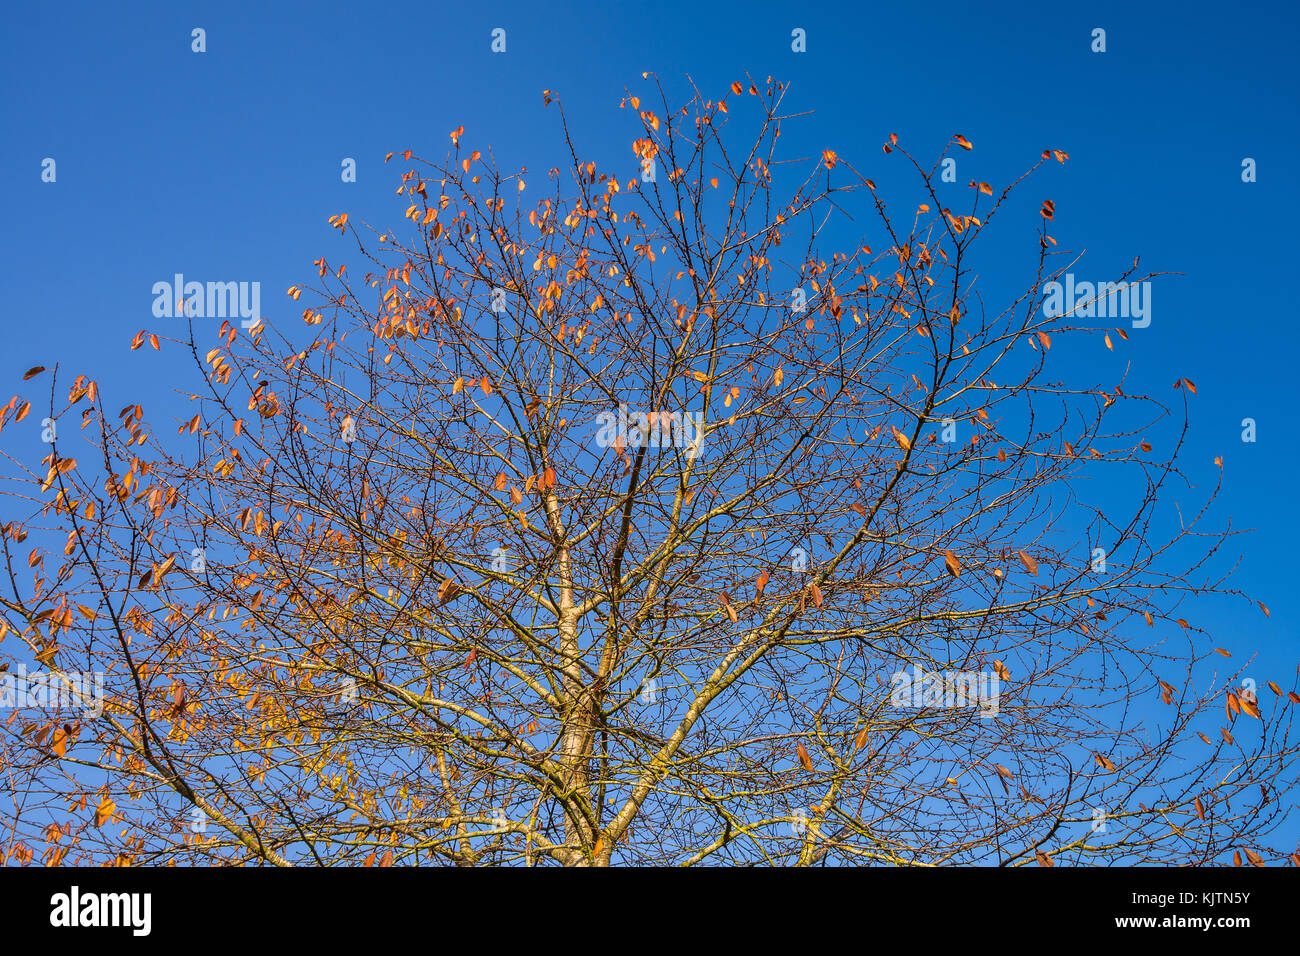 Remaining leaves on Cherry tree in autumn - France. - Stock Image